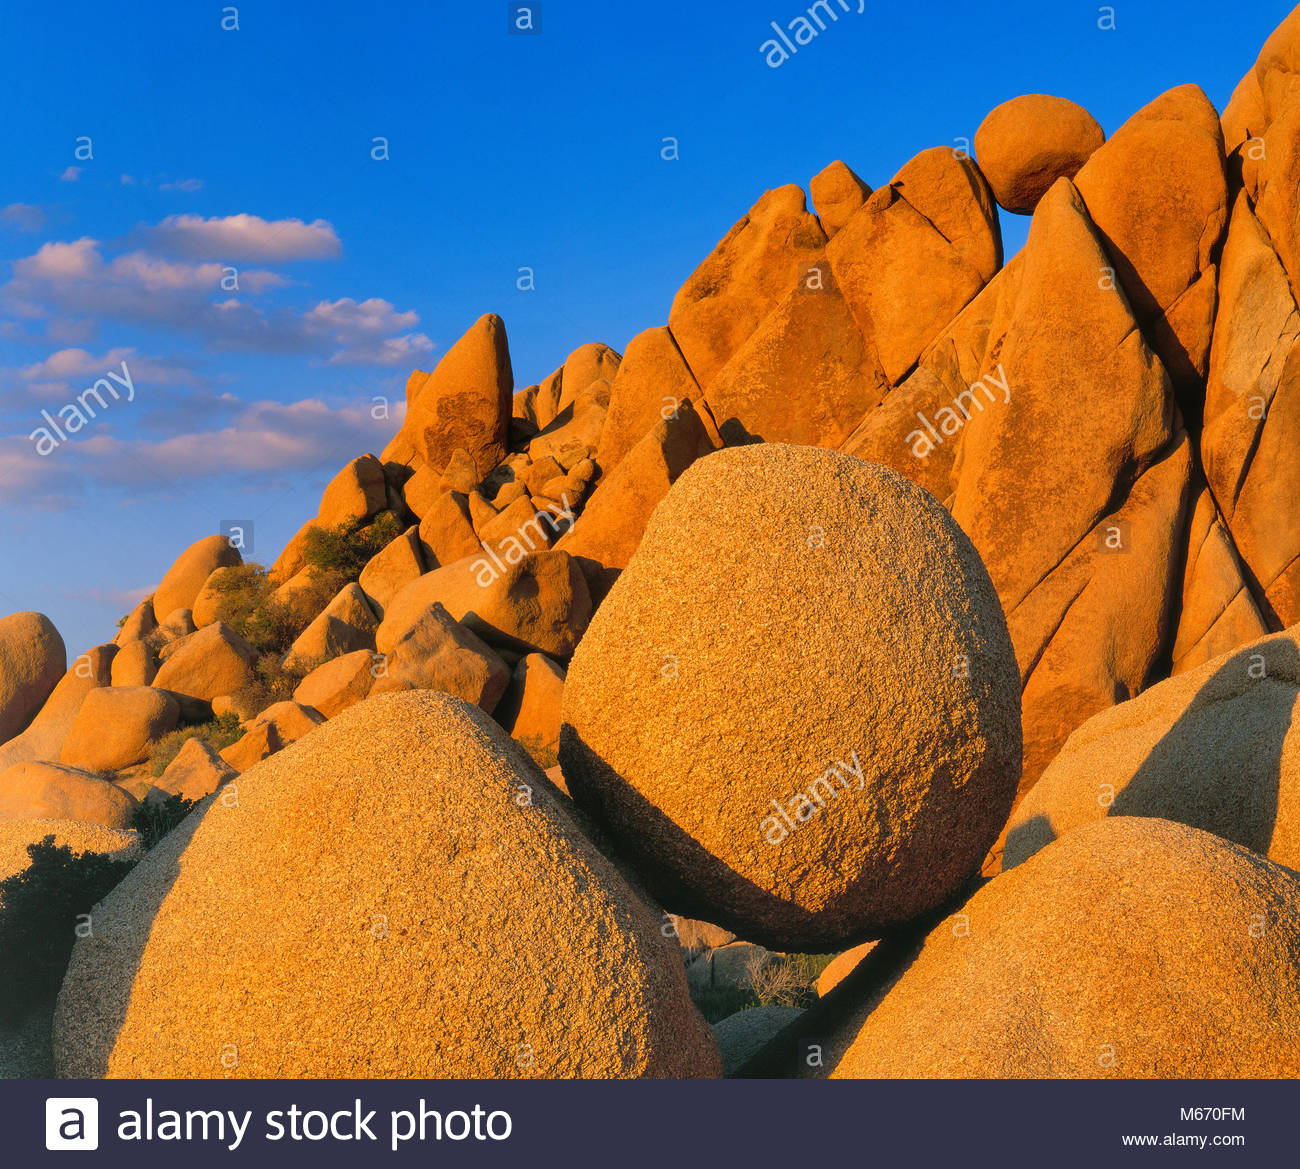 Balanced Rocks, Joshua Tree National Park, California - Stock Image